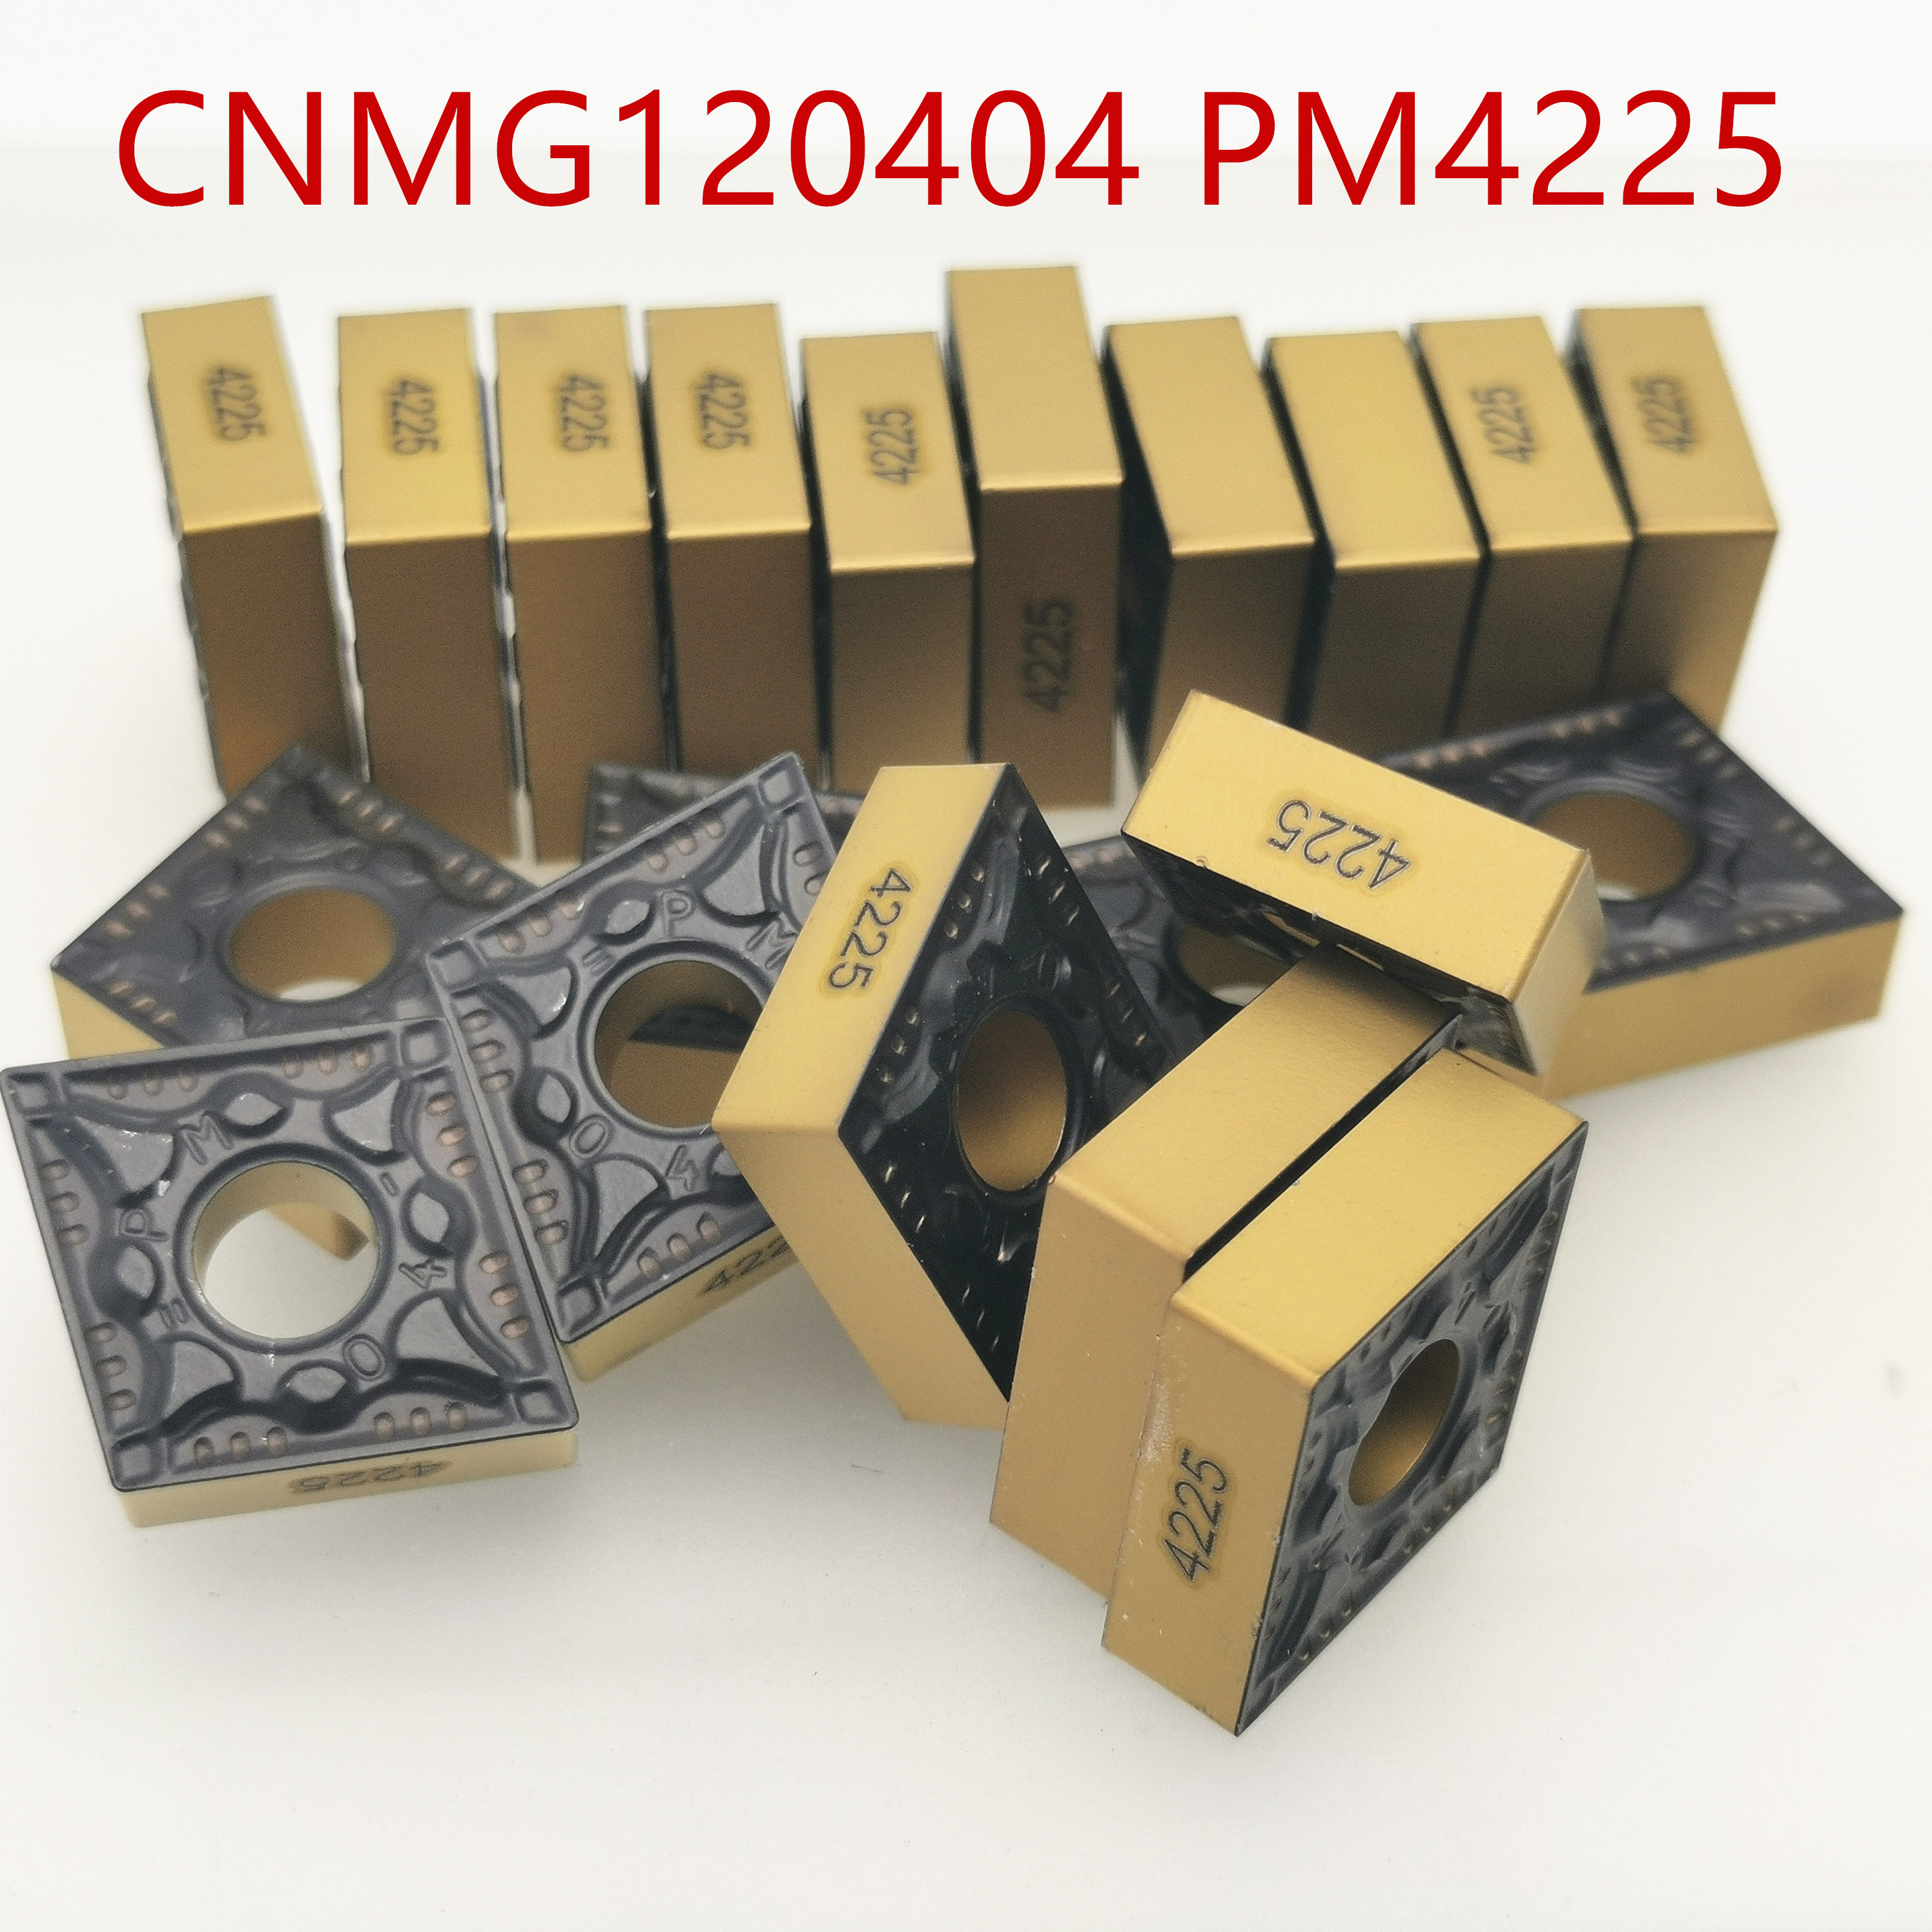 Hard Alloy CNMG120404 PM 4225 External Turning Tools Carbide insert Lathe Tool CNMG 120404 PVD turning tungsten carbide